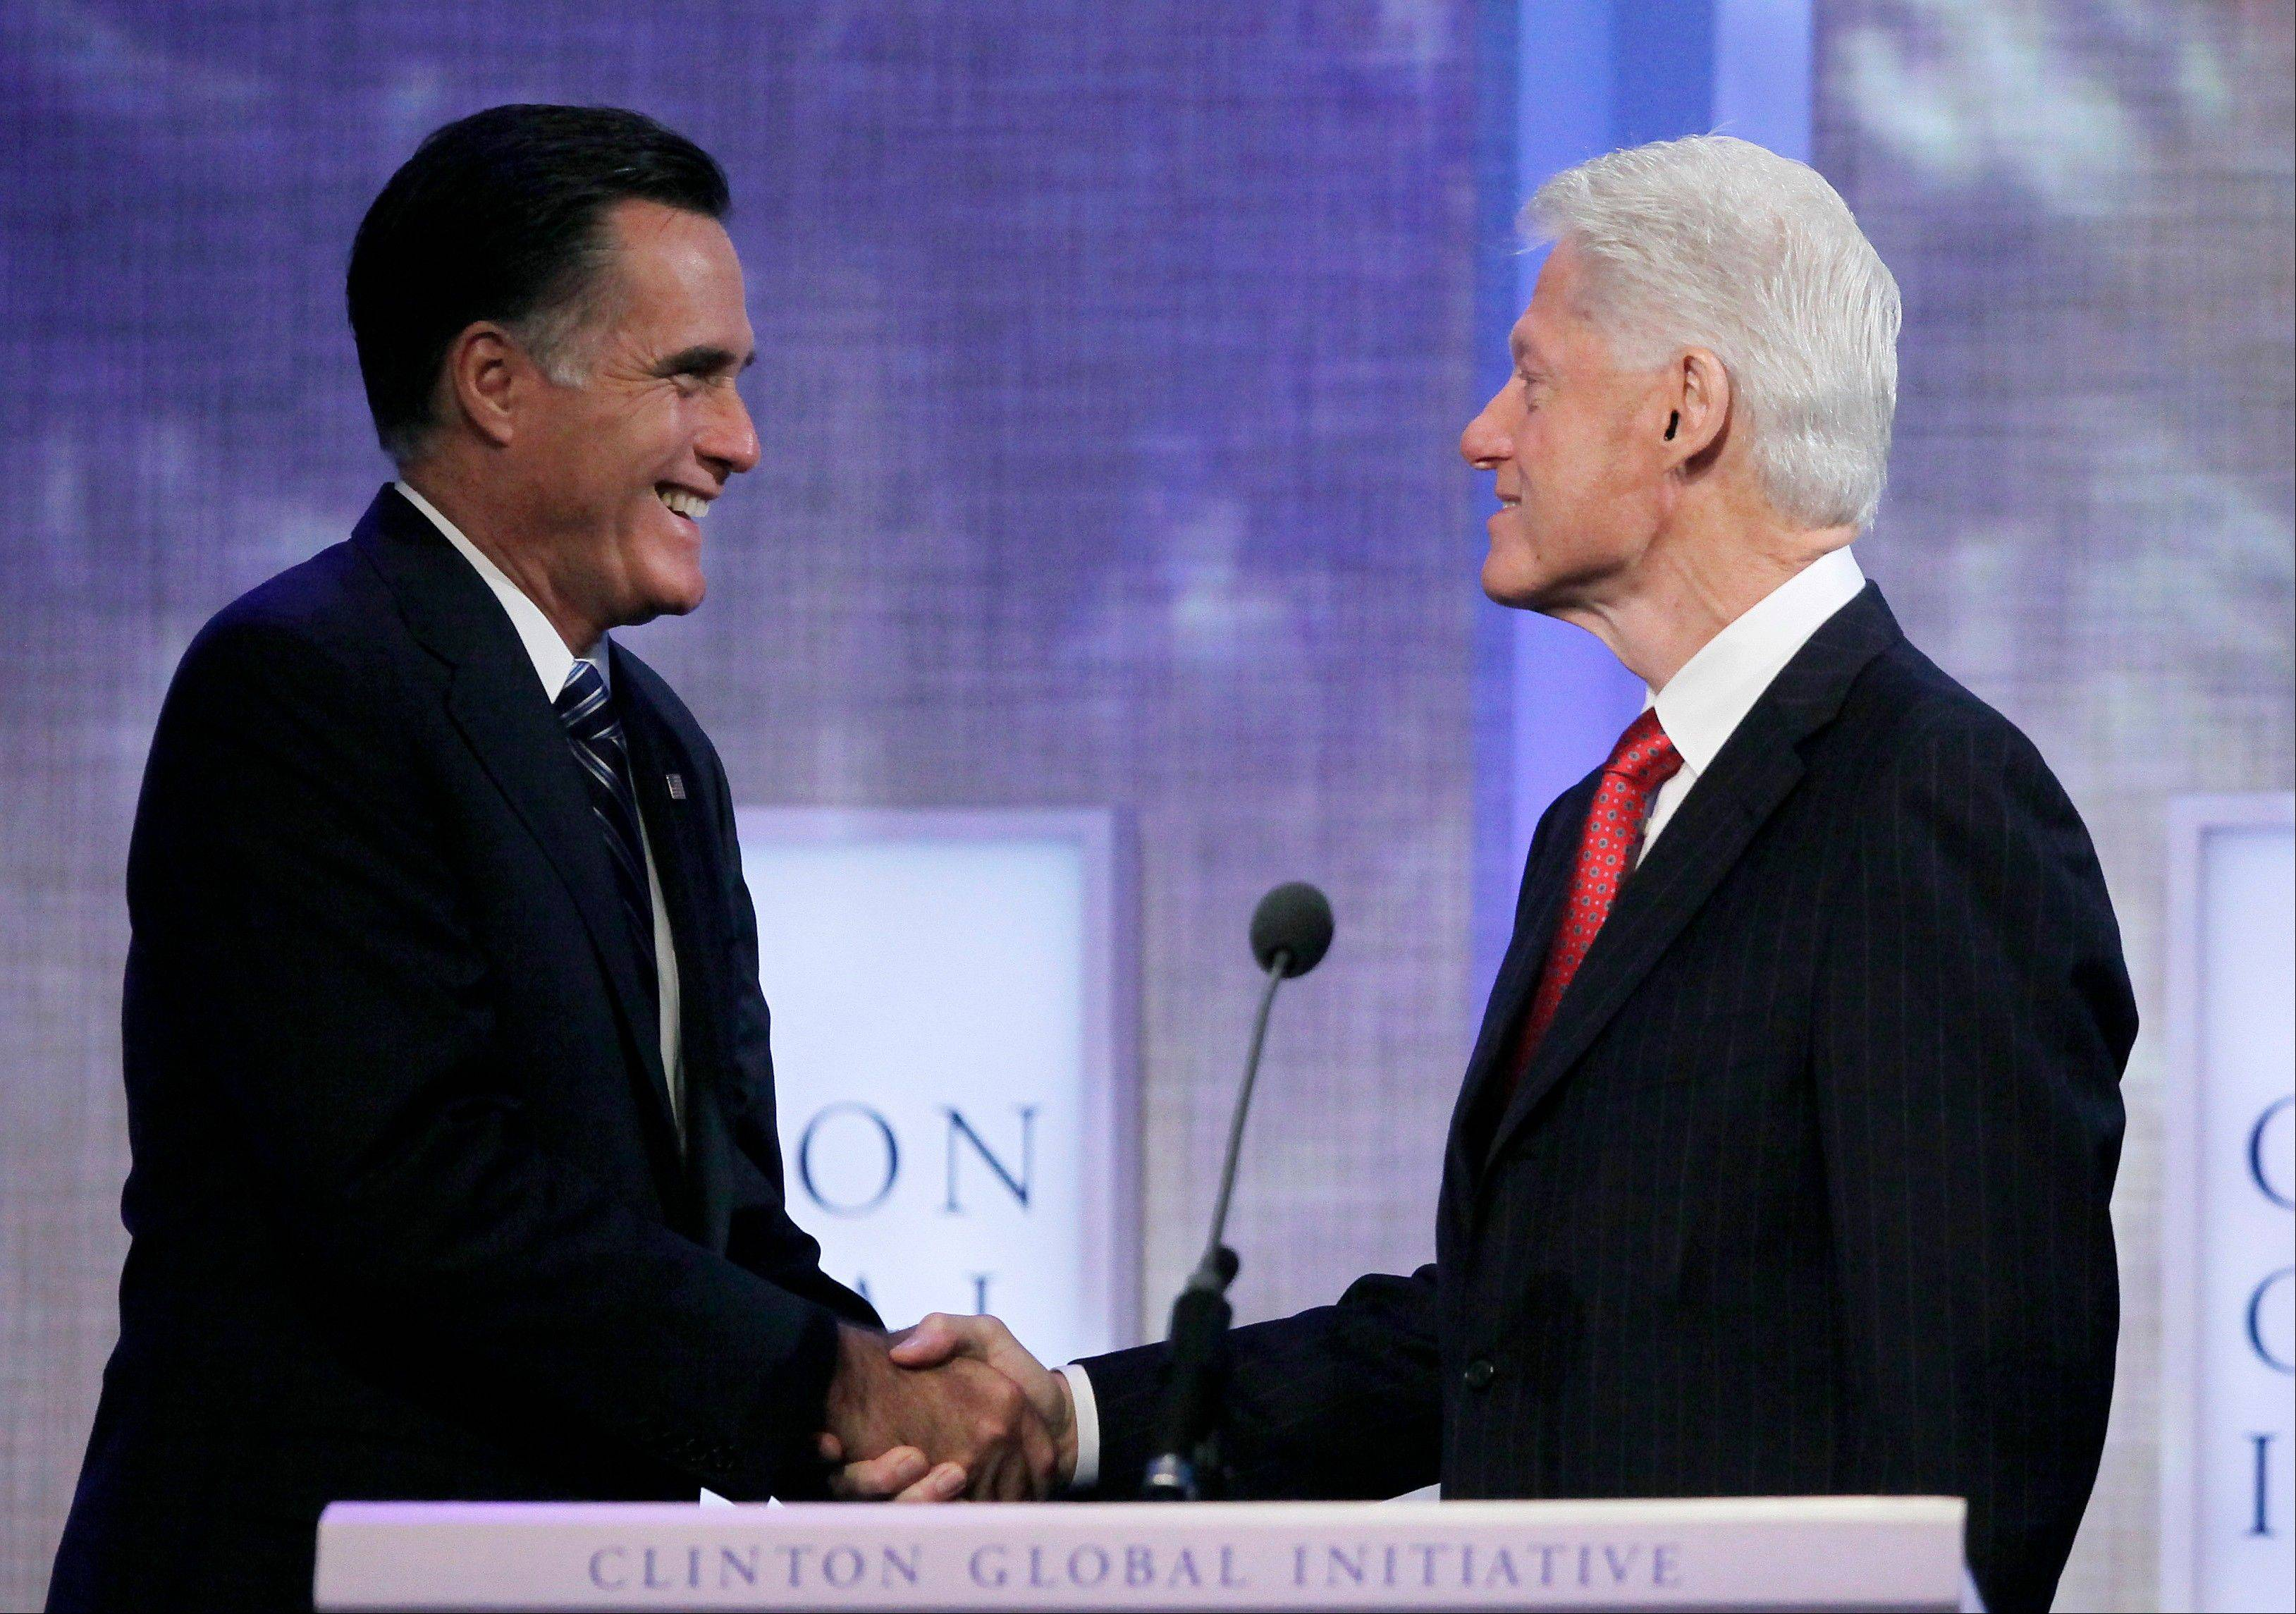 Republican presidential candidate Mitt Romney shakes hands with former President Bill Clinton, Tuesday at the Clinton Global Initiative in New York.